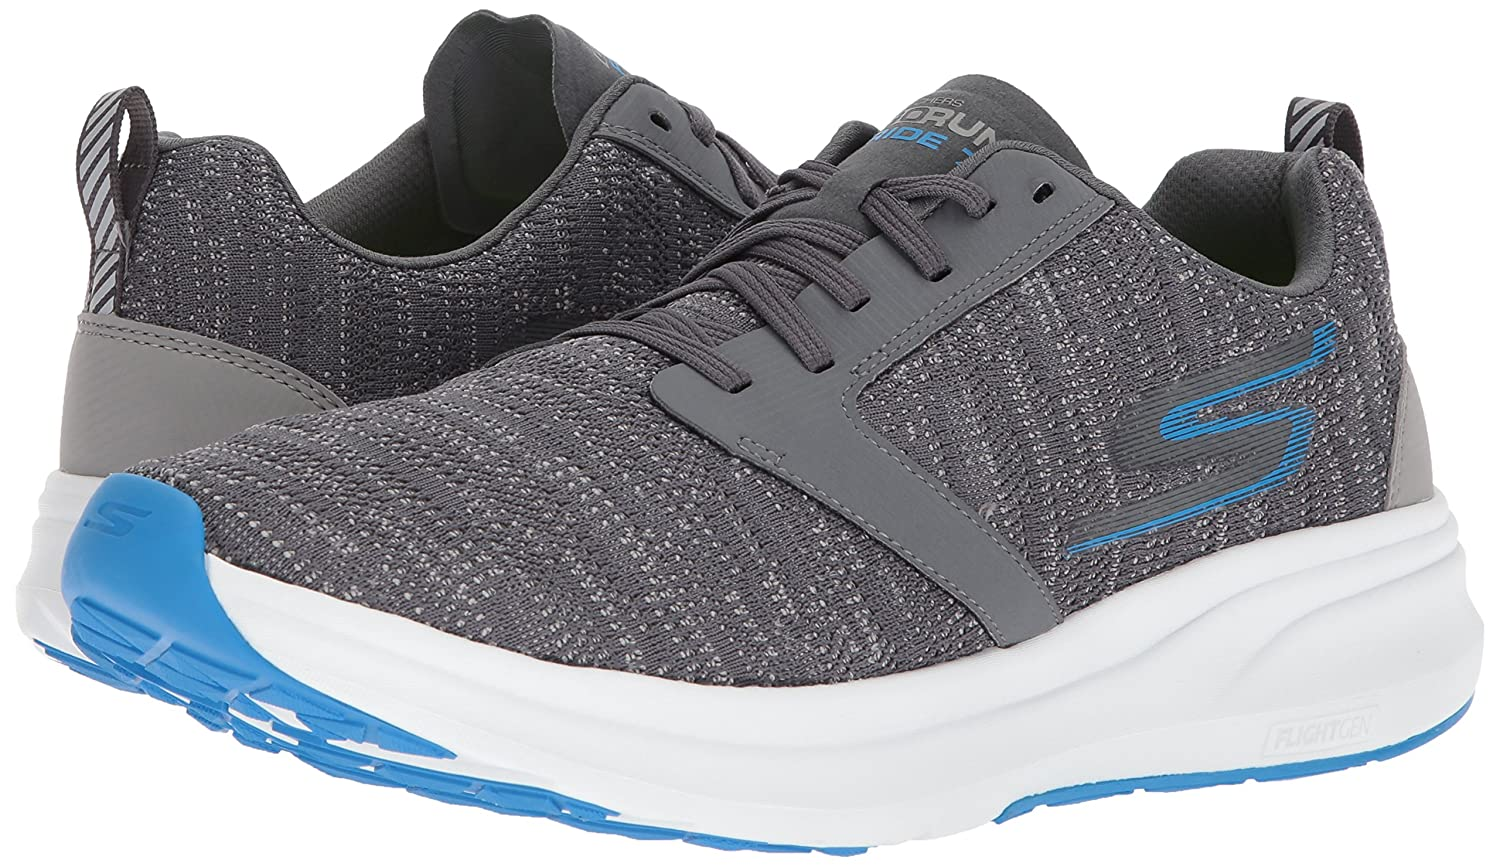 Skechers GO Run Ride 7 Zapatillas para Correr - SS18-40: Amazon.es: Zapatos y complementos